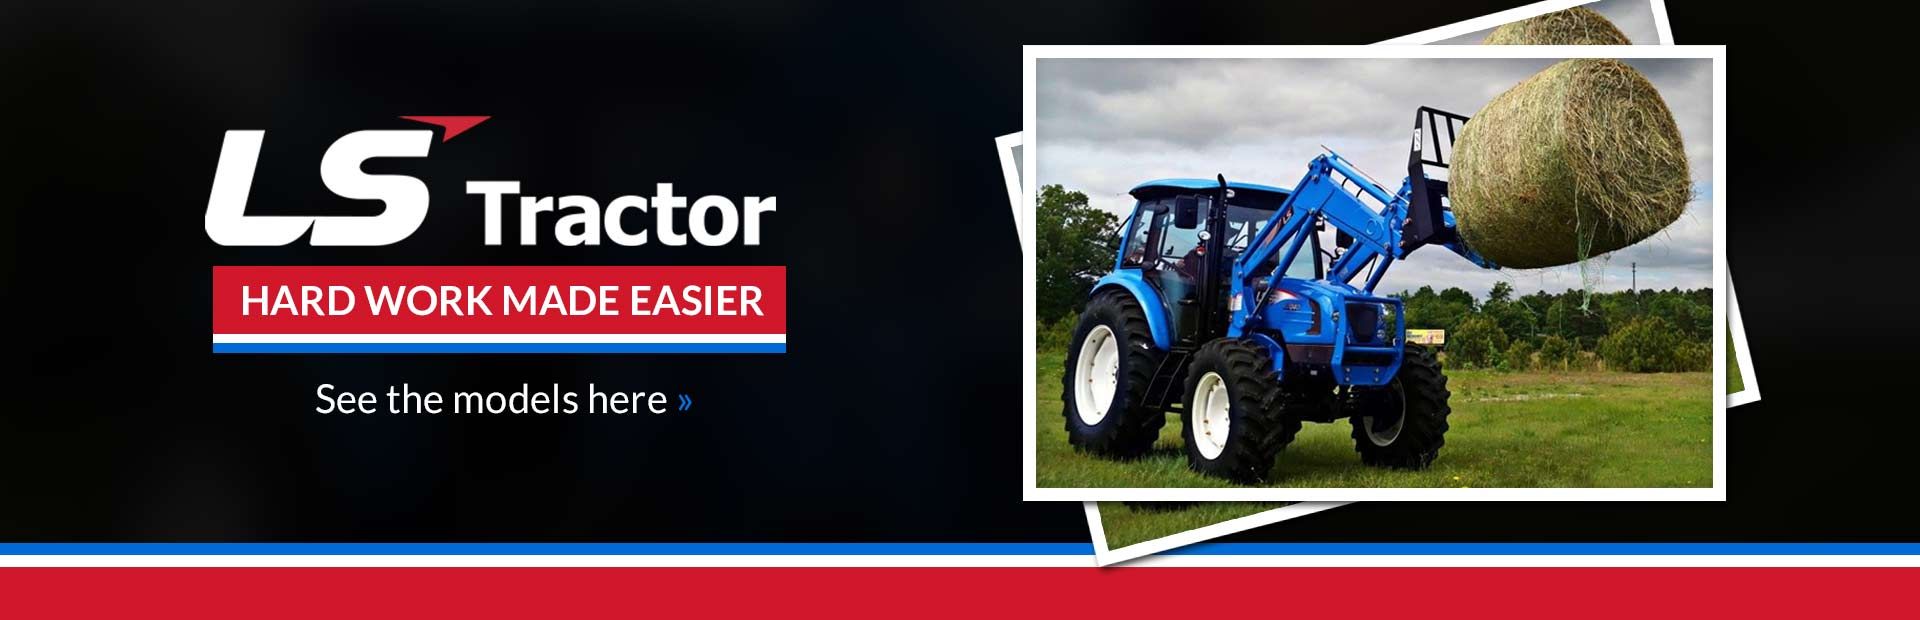 LS Tractors: Click here to view the models.